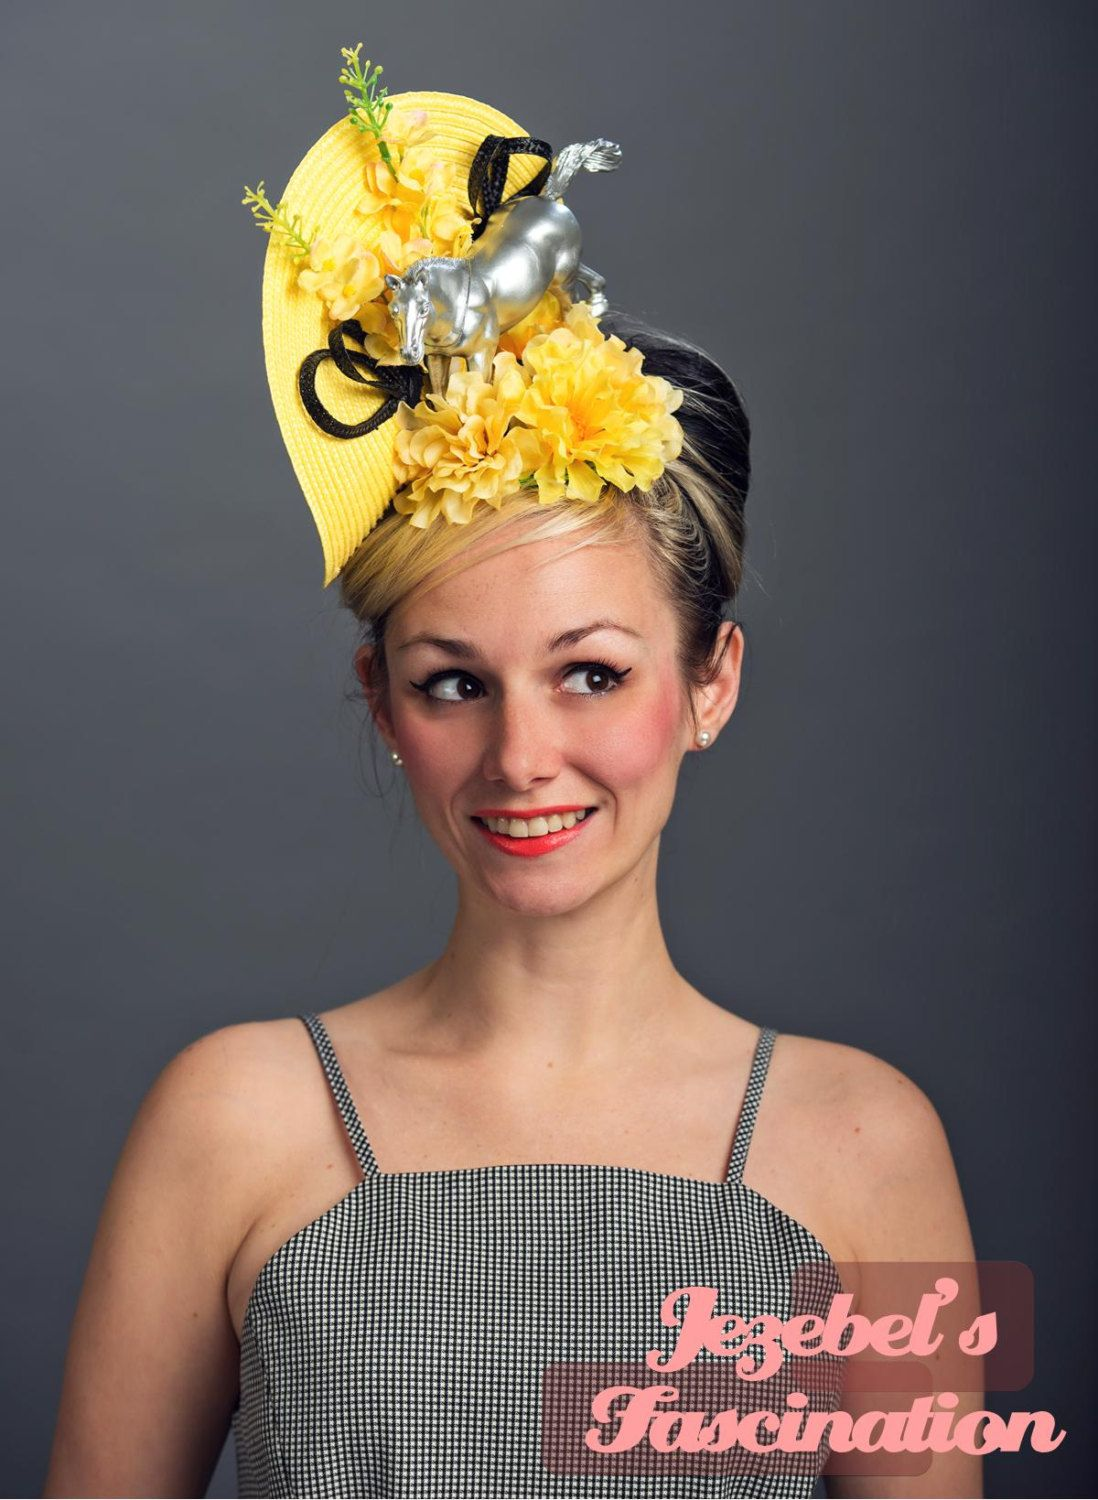 Phoenician Filly-Light Yellow Floral Fascinator Ascot Mustang Hatinator  Horse Race Cocktail Hat Kentucky Derby Headpiece Spring Headdress - pinned  by ... ec2b1761484